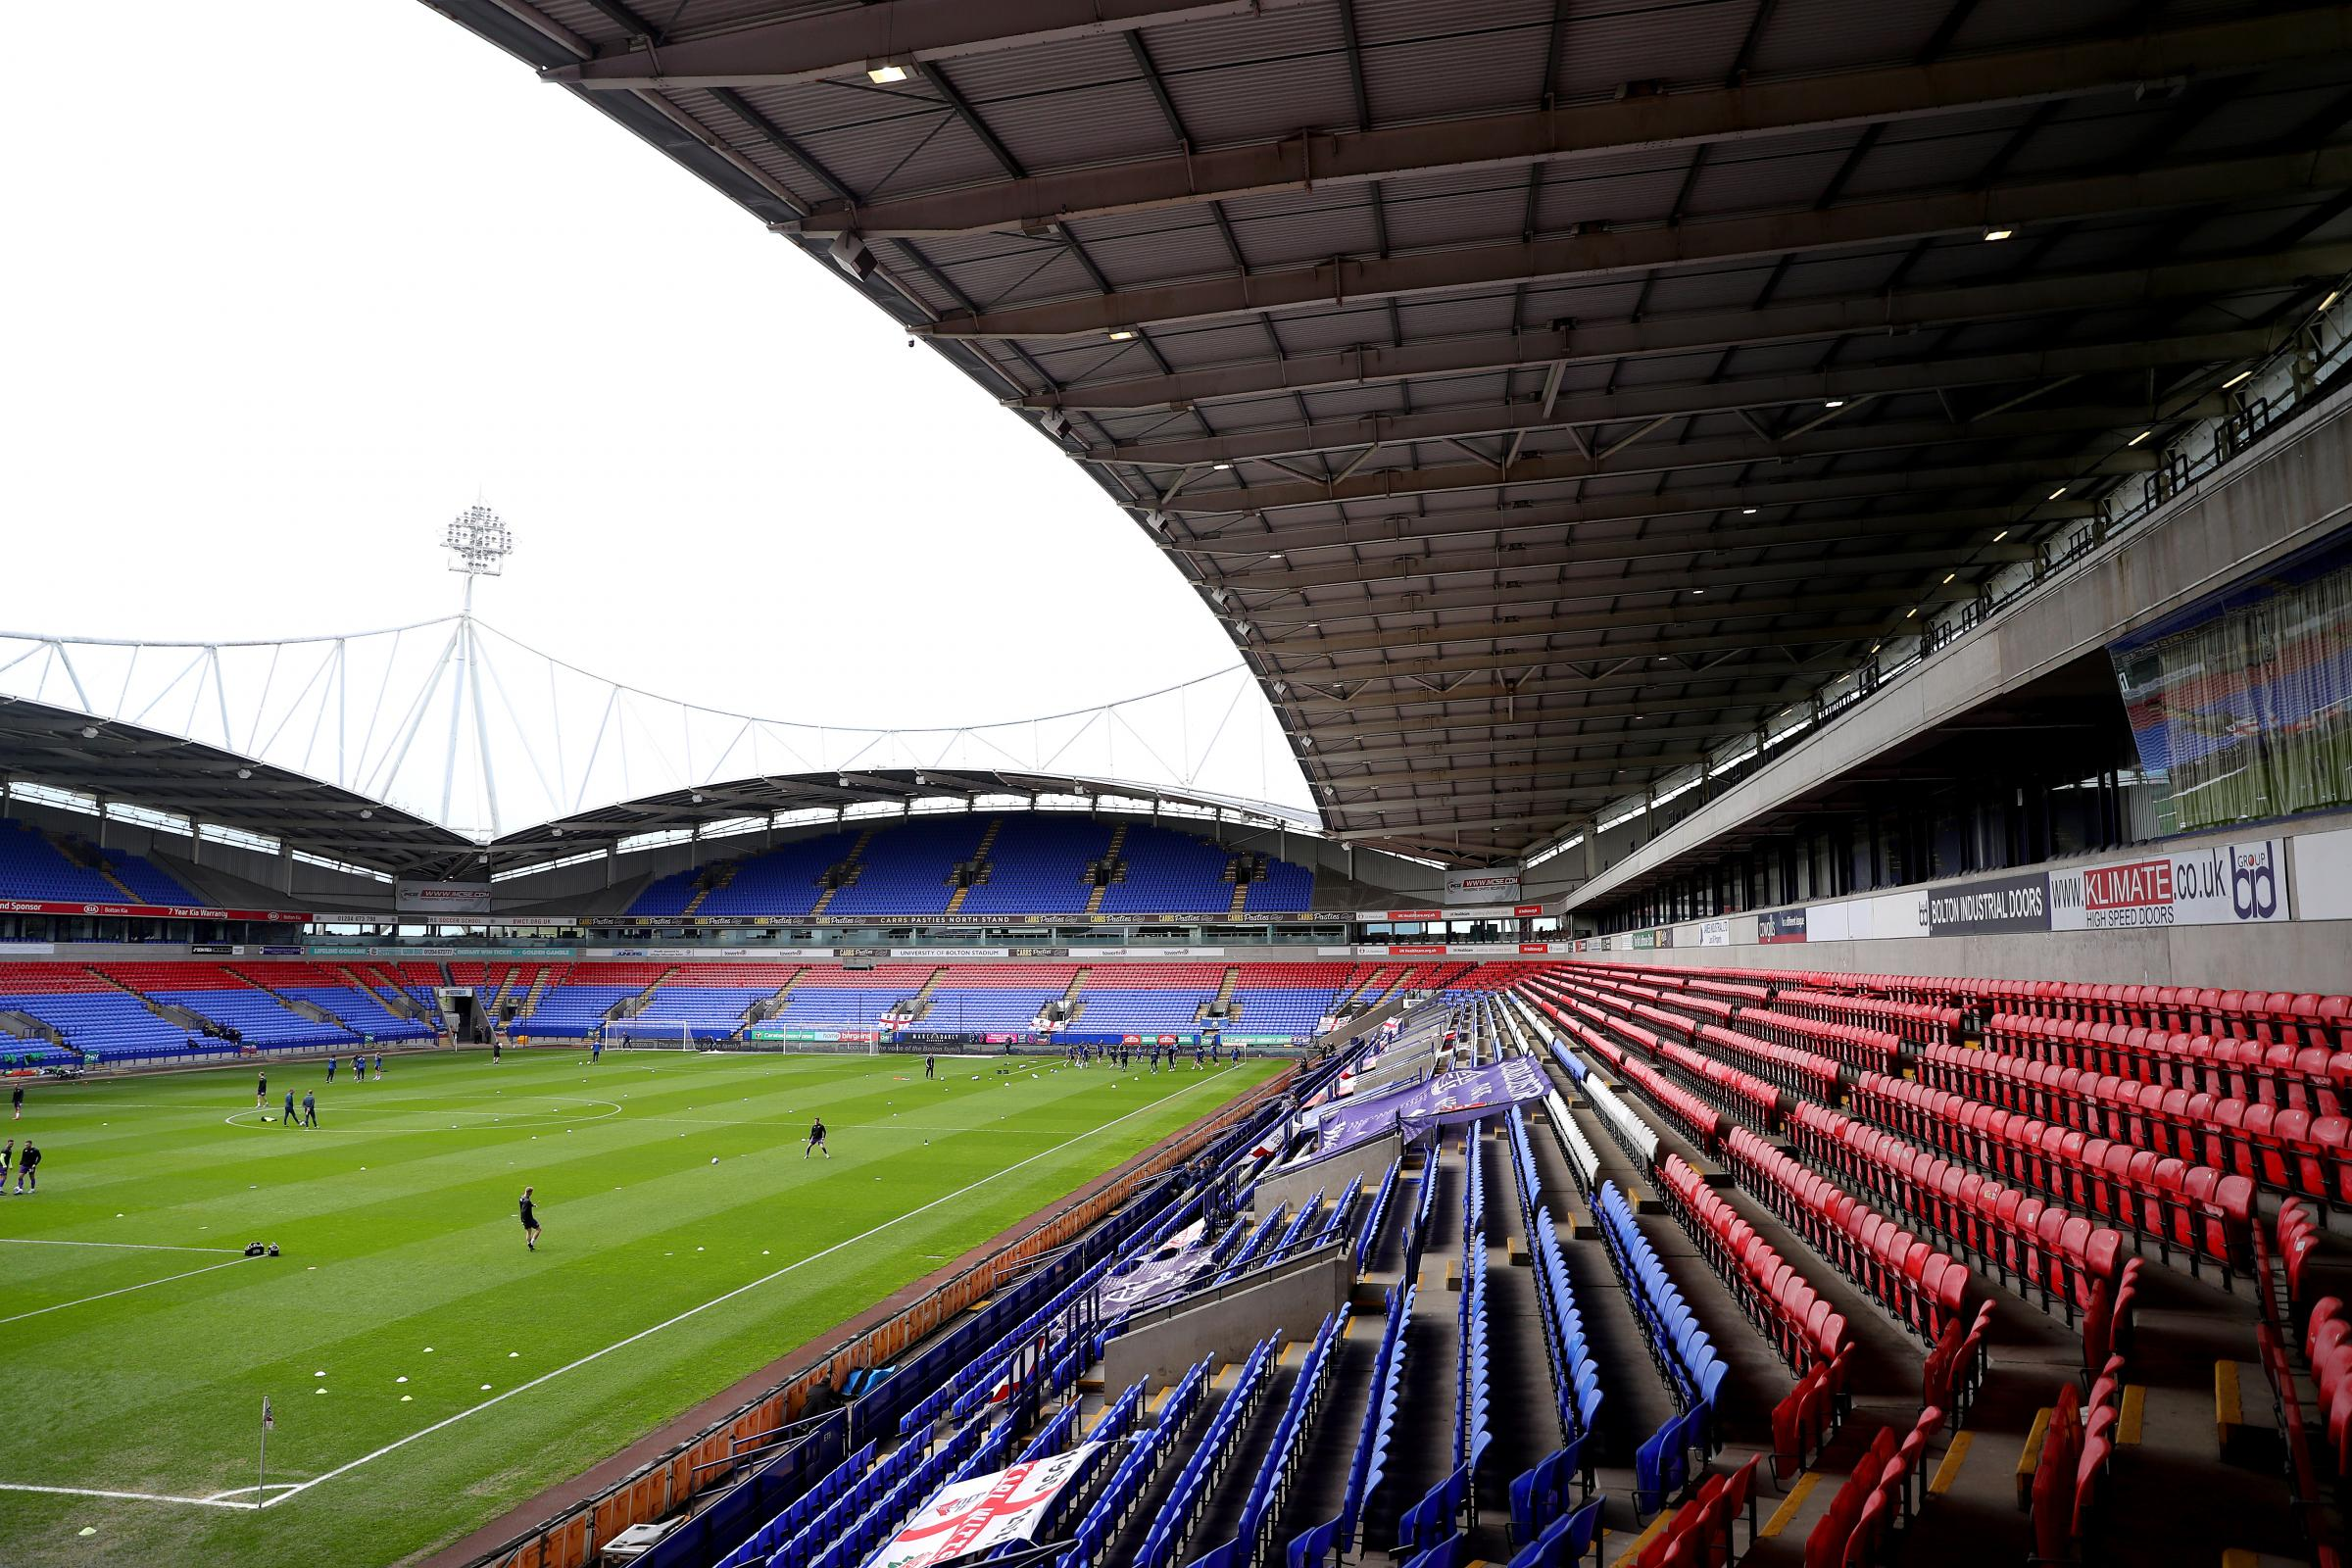 Bolton Wanderers walk out to new music composed by lifelong fan